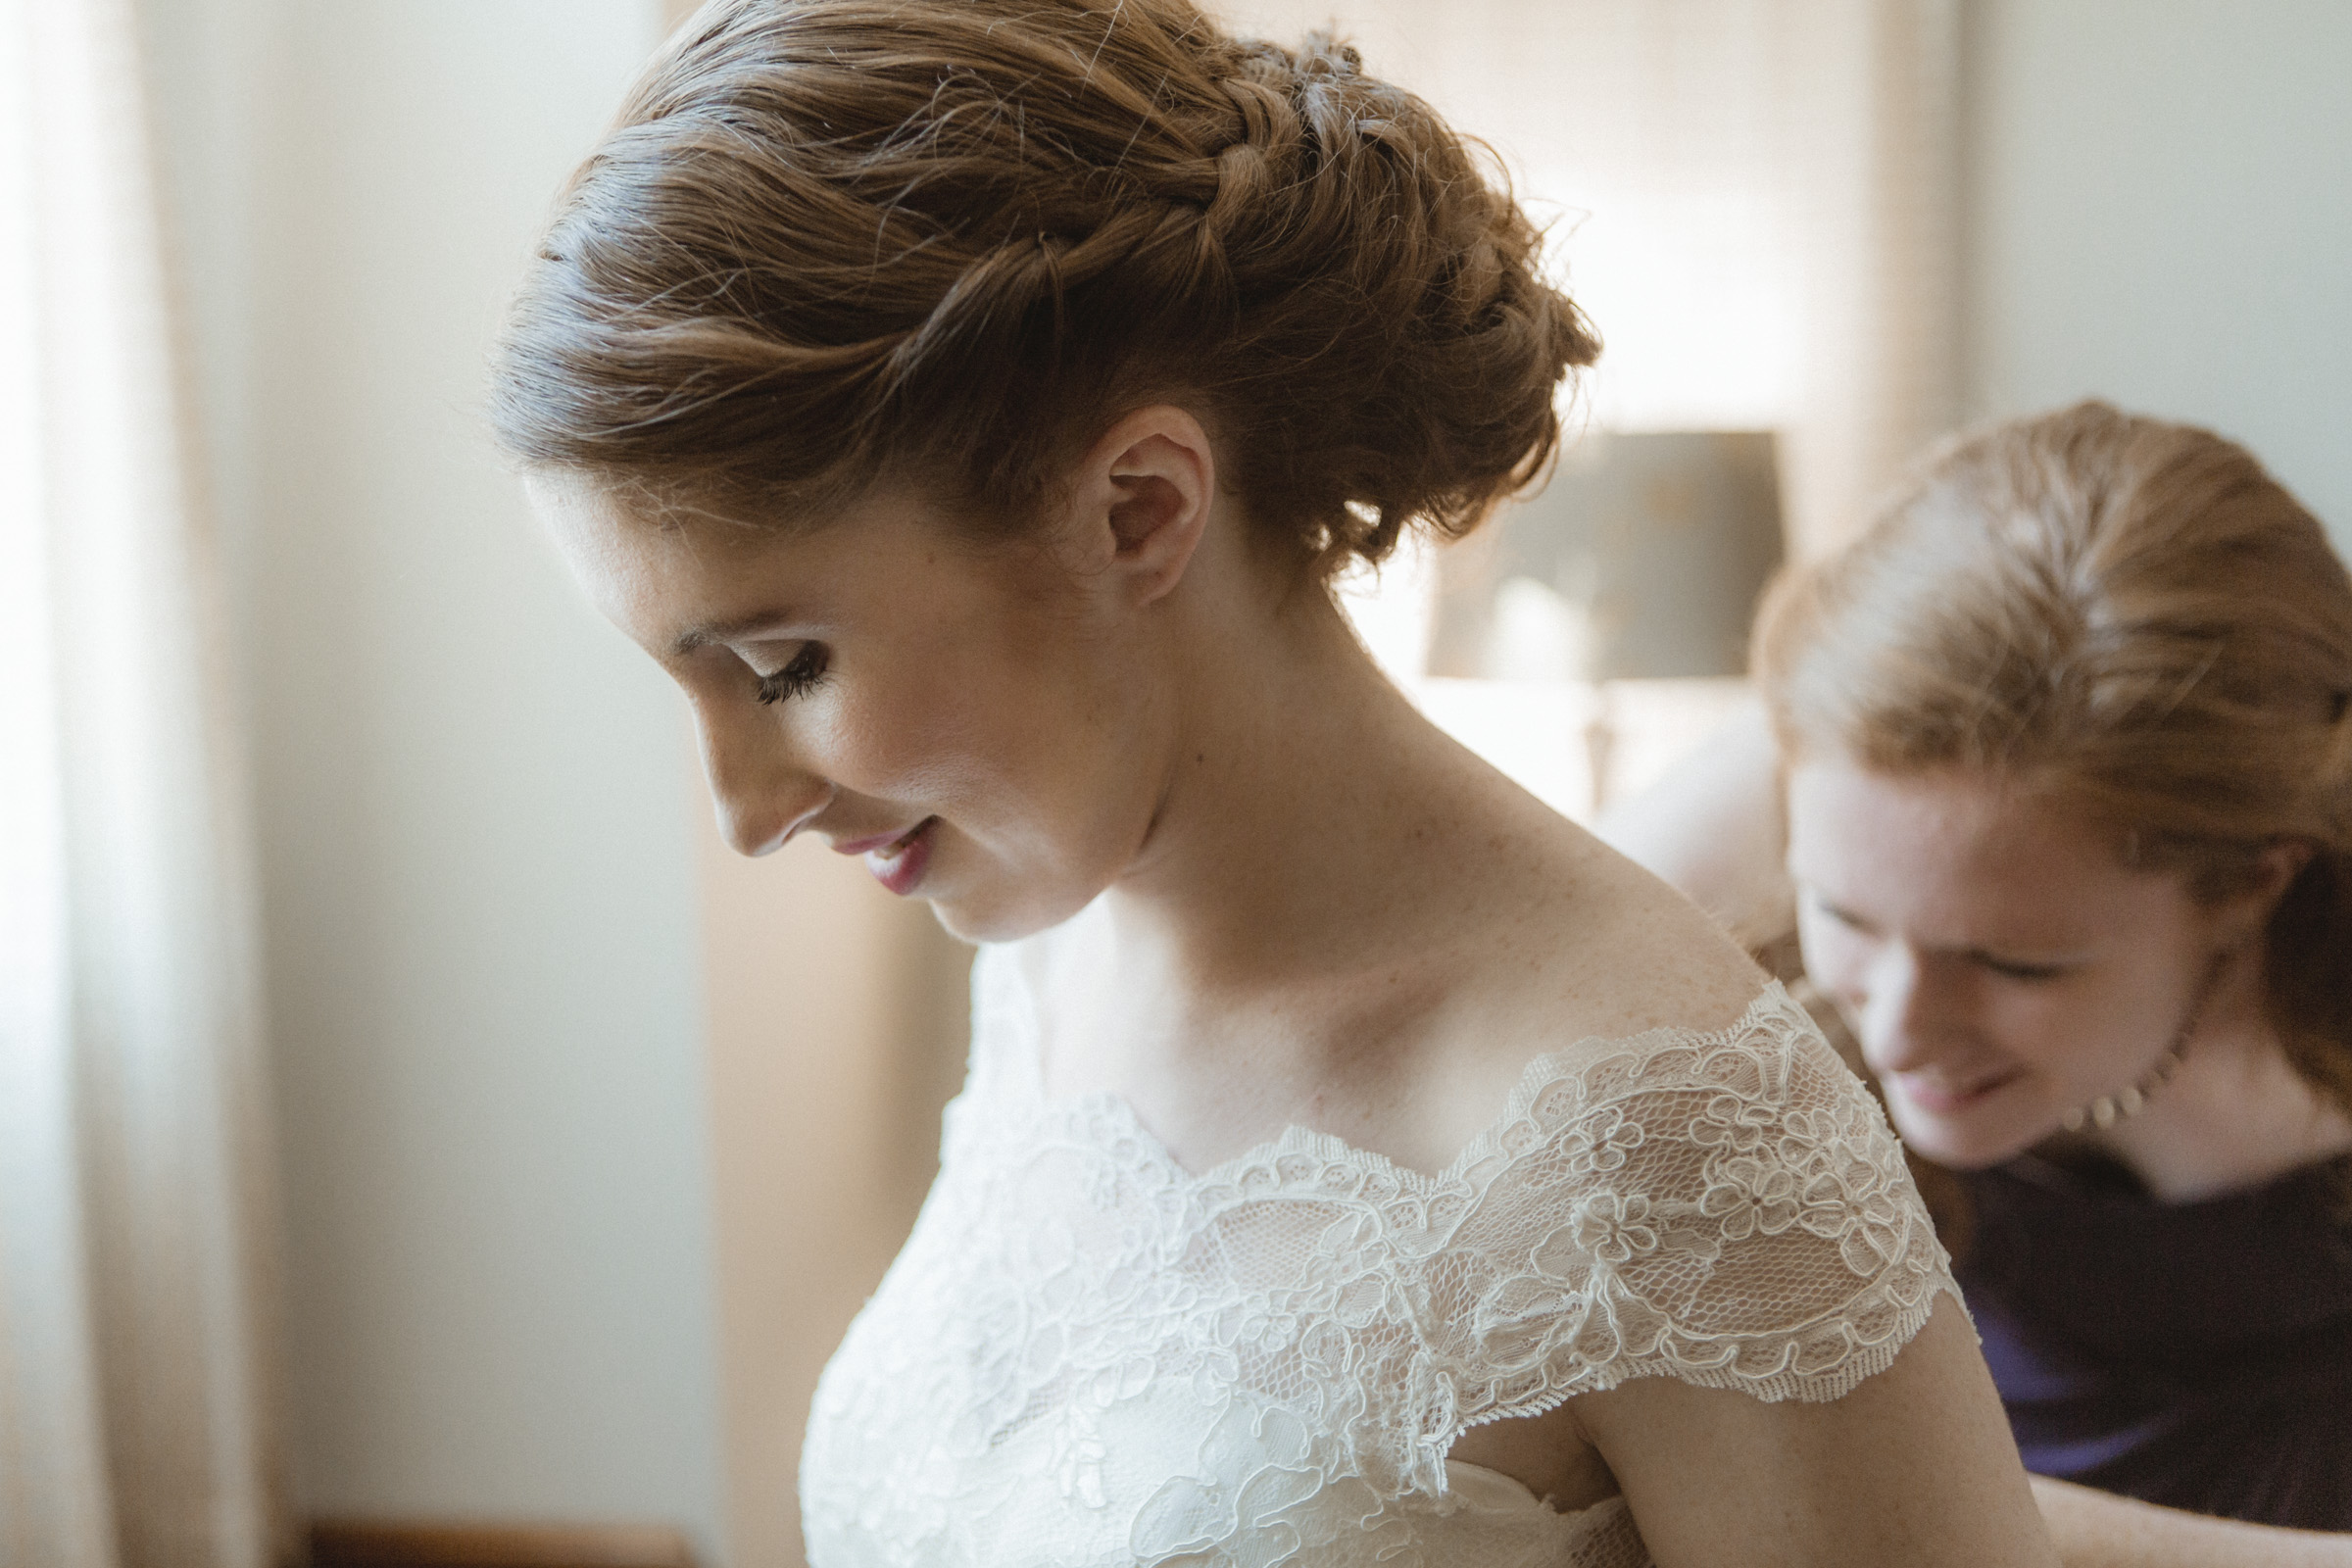 Bride puts on her gown - Estate at Florentine Gardens wedding - Hudson Valley Wedding - Kelsey & Anish's wedding - Amy Sims Photography